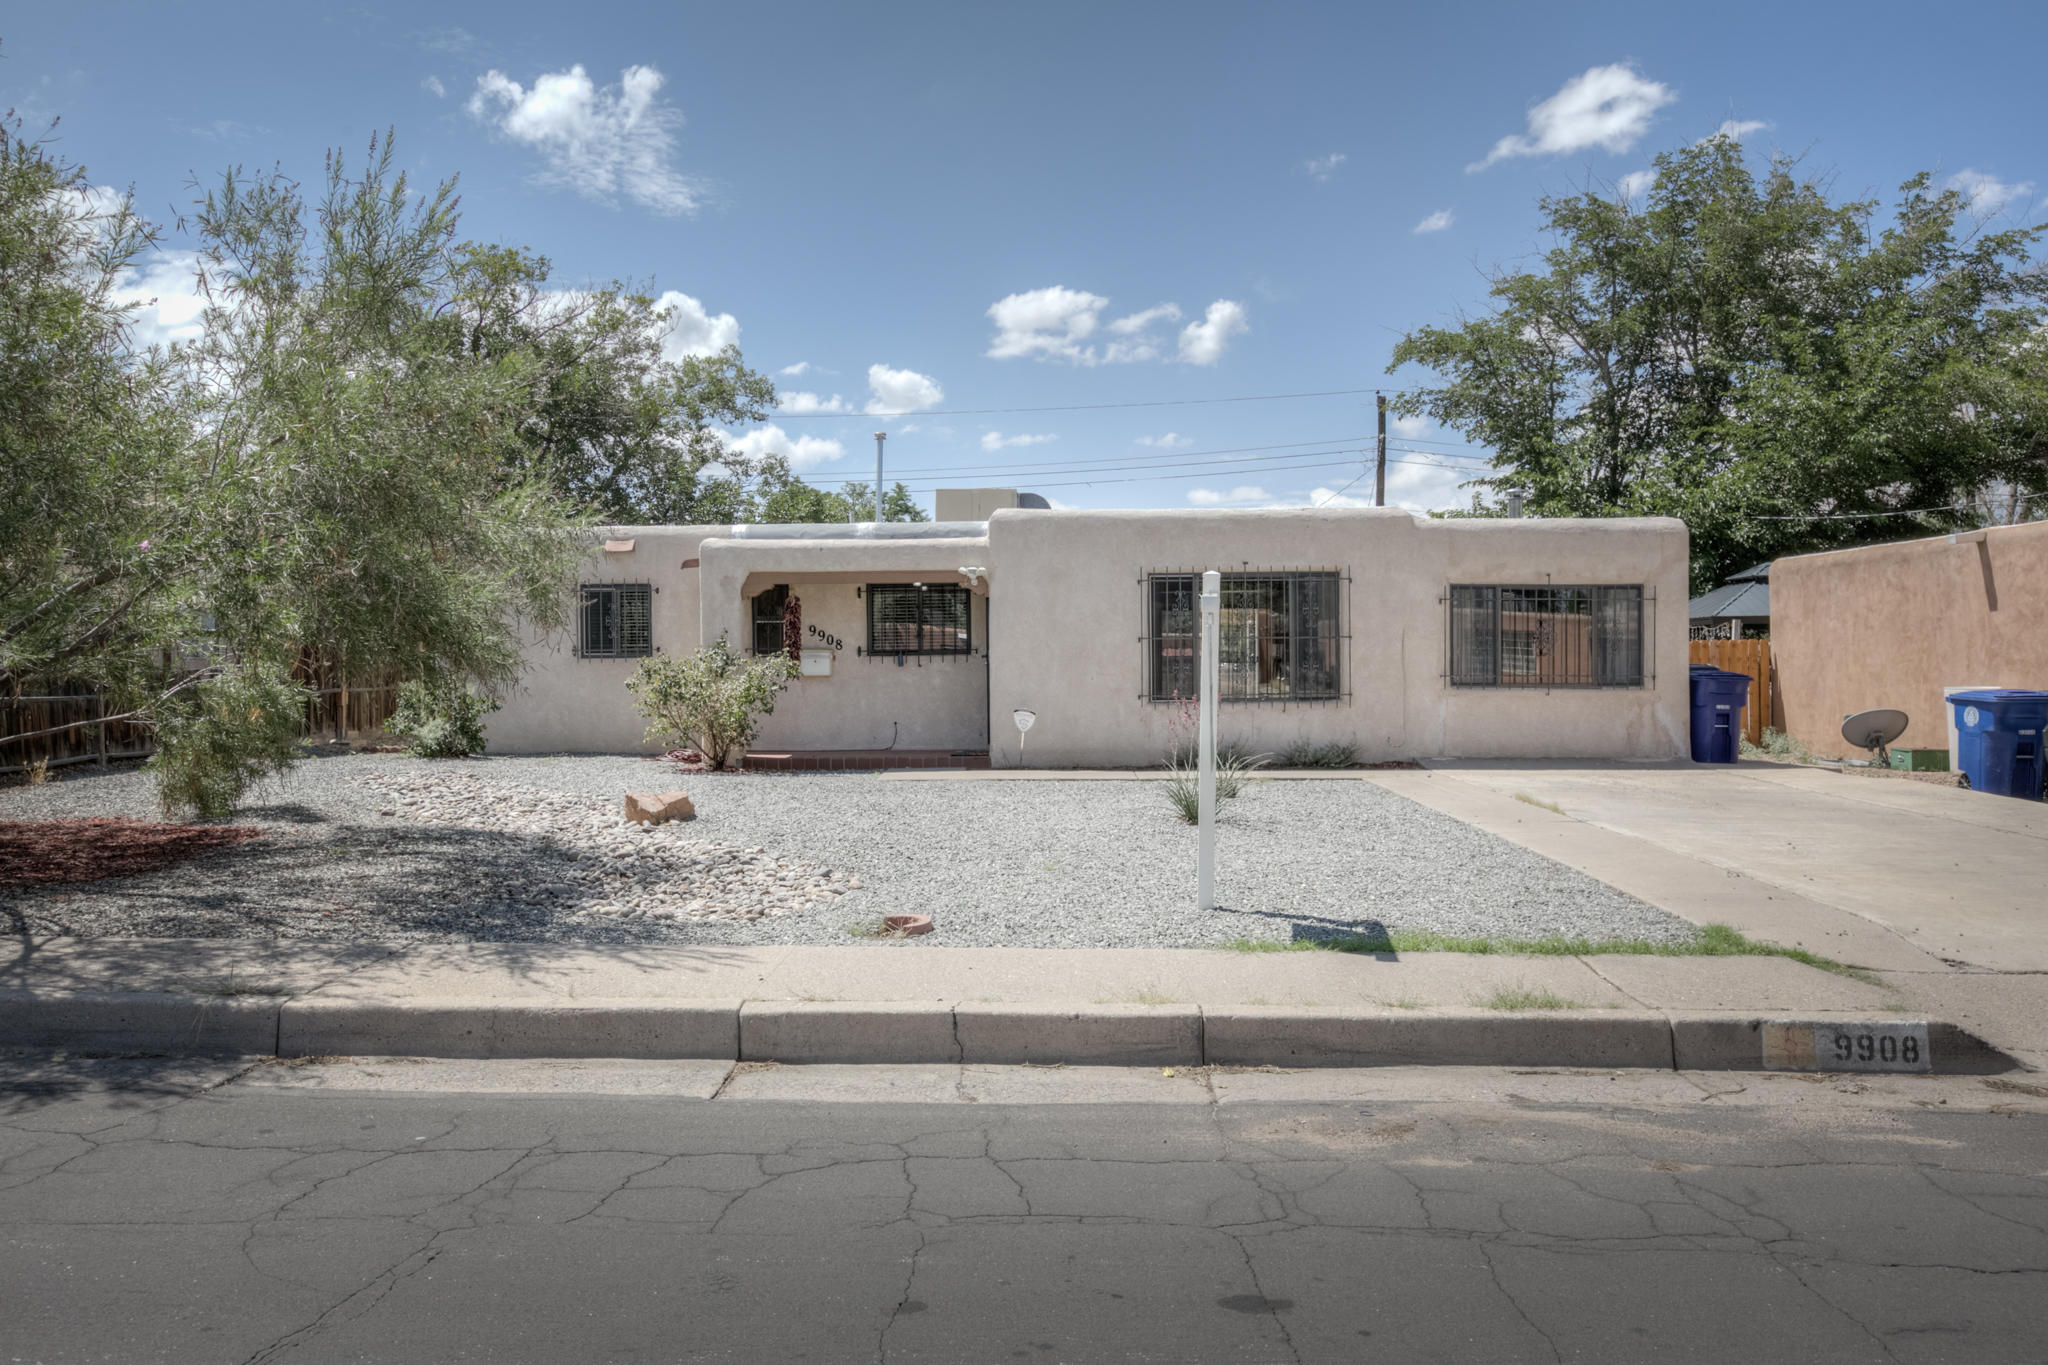 Lovely, light-filled 3 BR, 1 3/4 BA single-level home in a convenient NE location with easy access to the freeway, Kirtland AFB, shopping and restaurants. Spacious, updated kitchen with skylight, ample cabinet and counter space, and adjacent dining area. Large laundry/utility room with tons of storage.  Flex room could be 2nd living area, office or workout room. Cozy wood burning fireplace. Guest bath features  a charming claw foot bathtub . Nicely xeriscaped easy-care front yard and a large covered patio and back yard with storage shed.